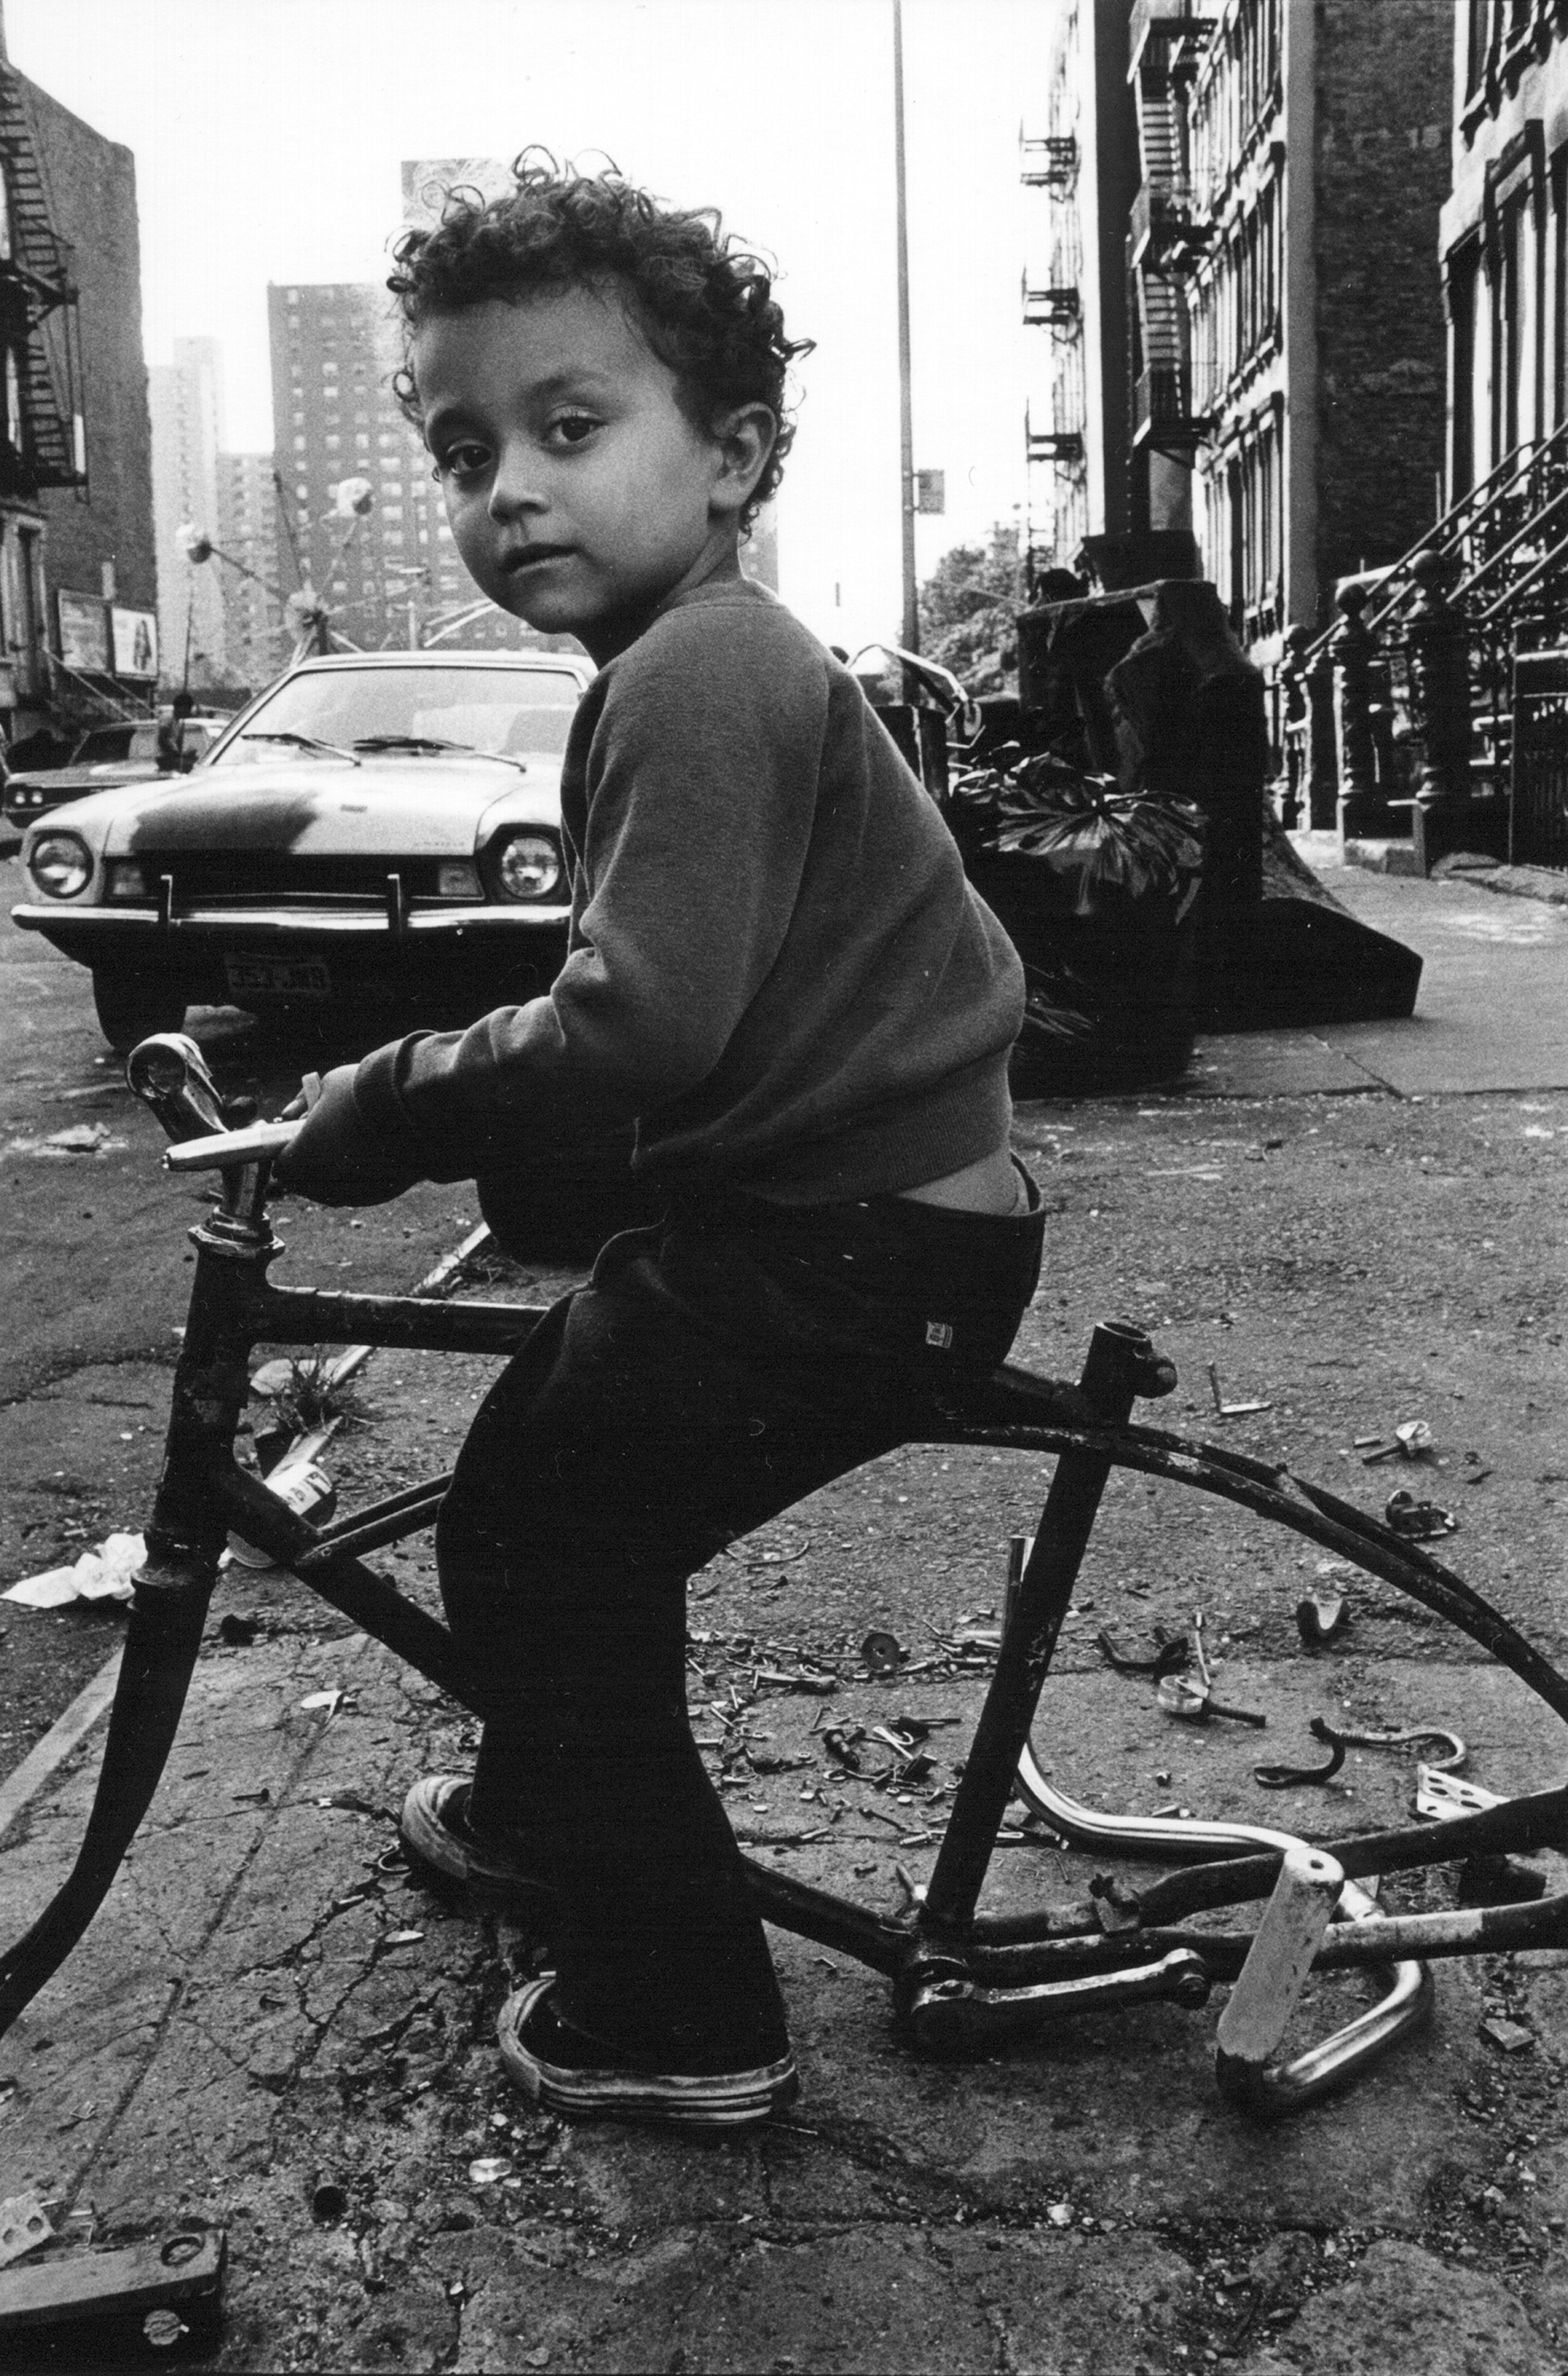 No Wheels, El Barrio, 1978